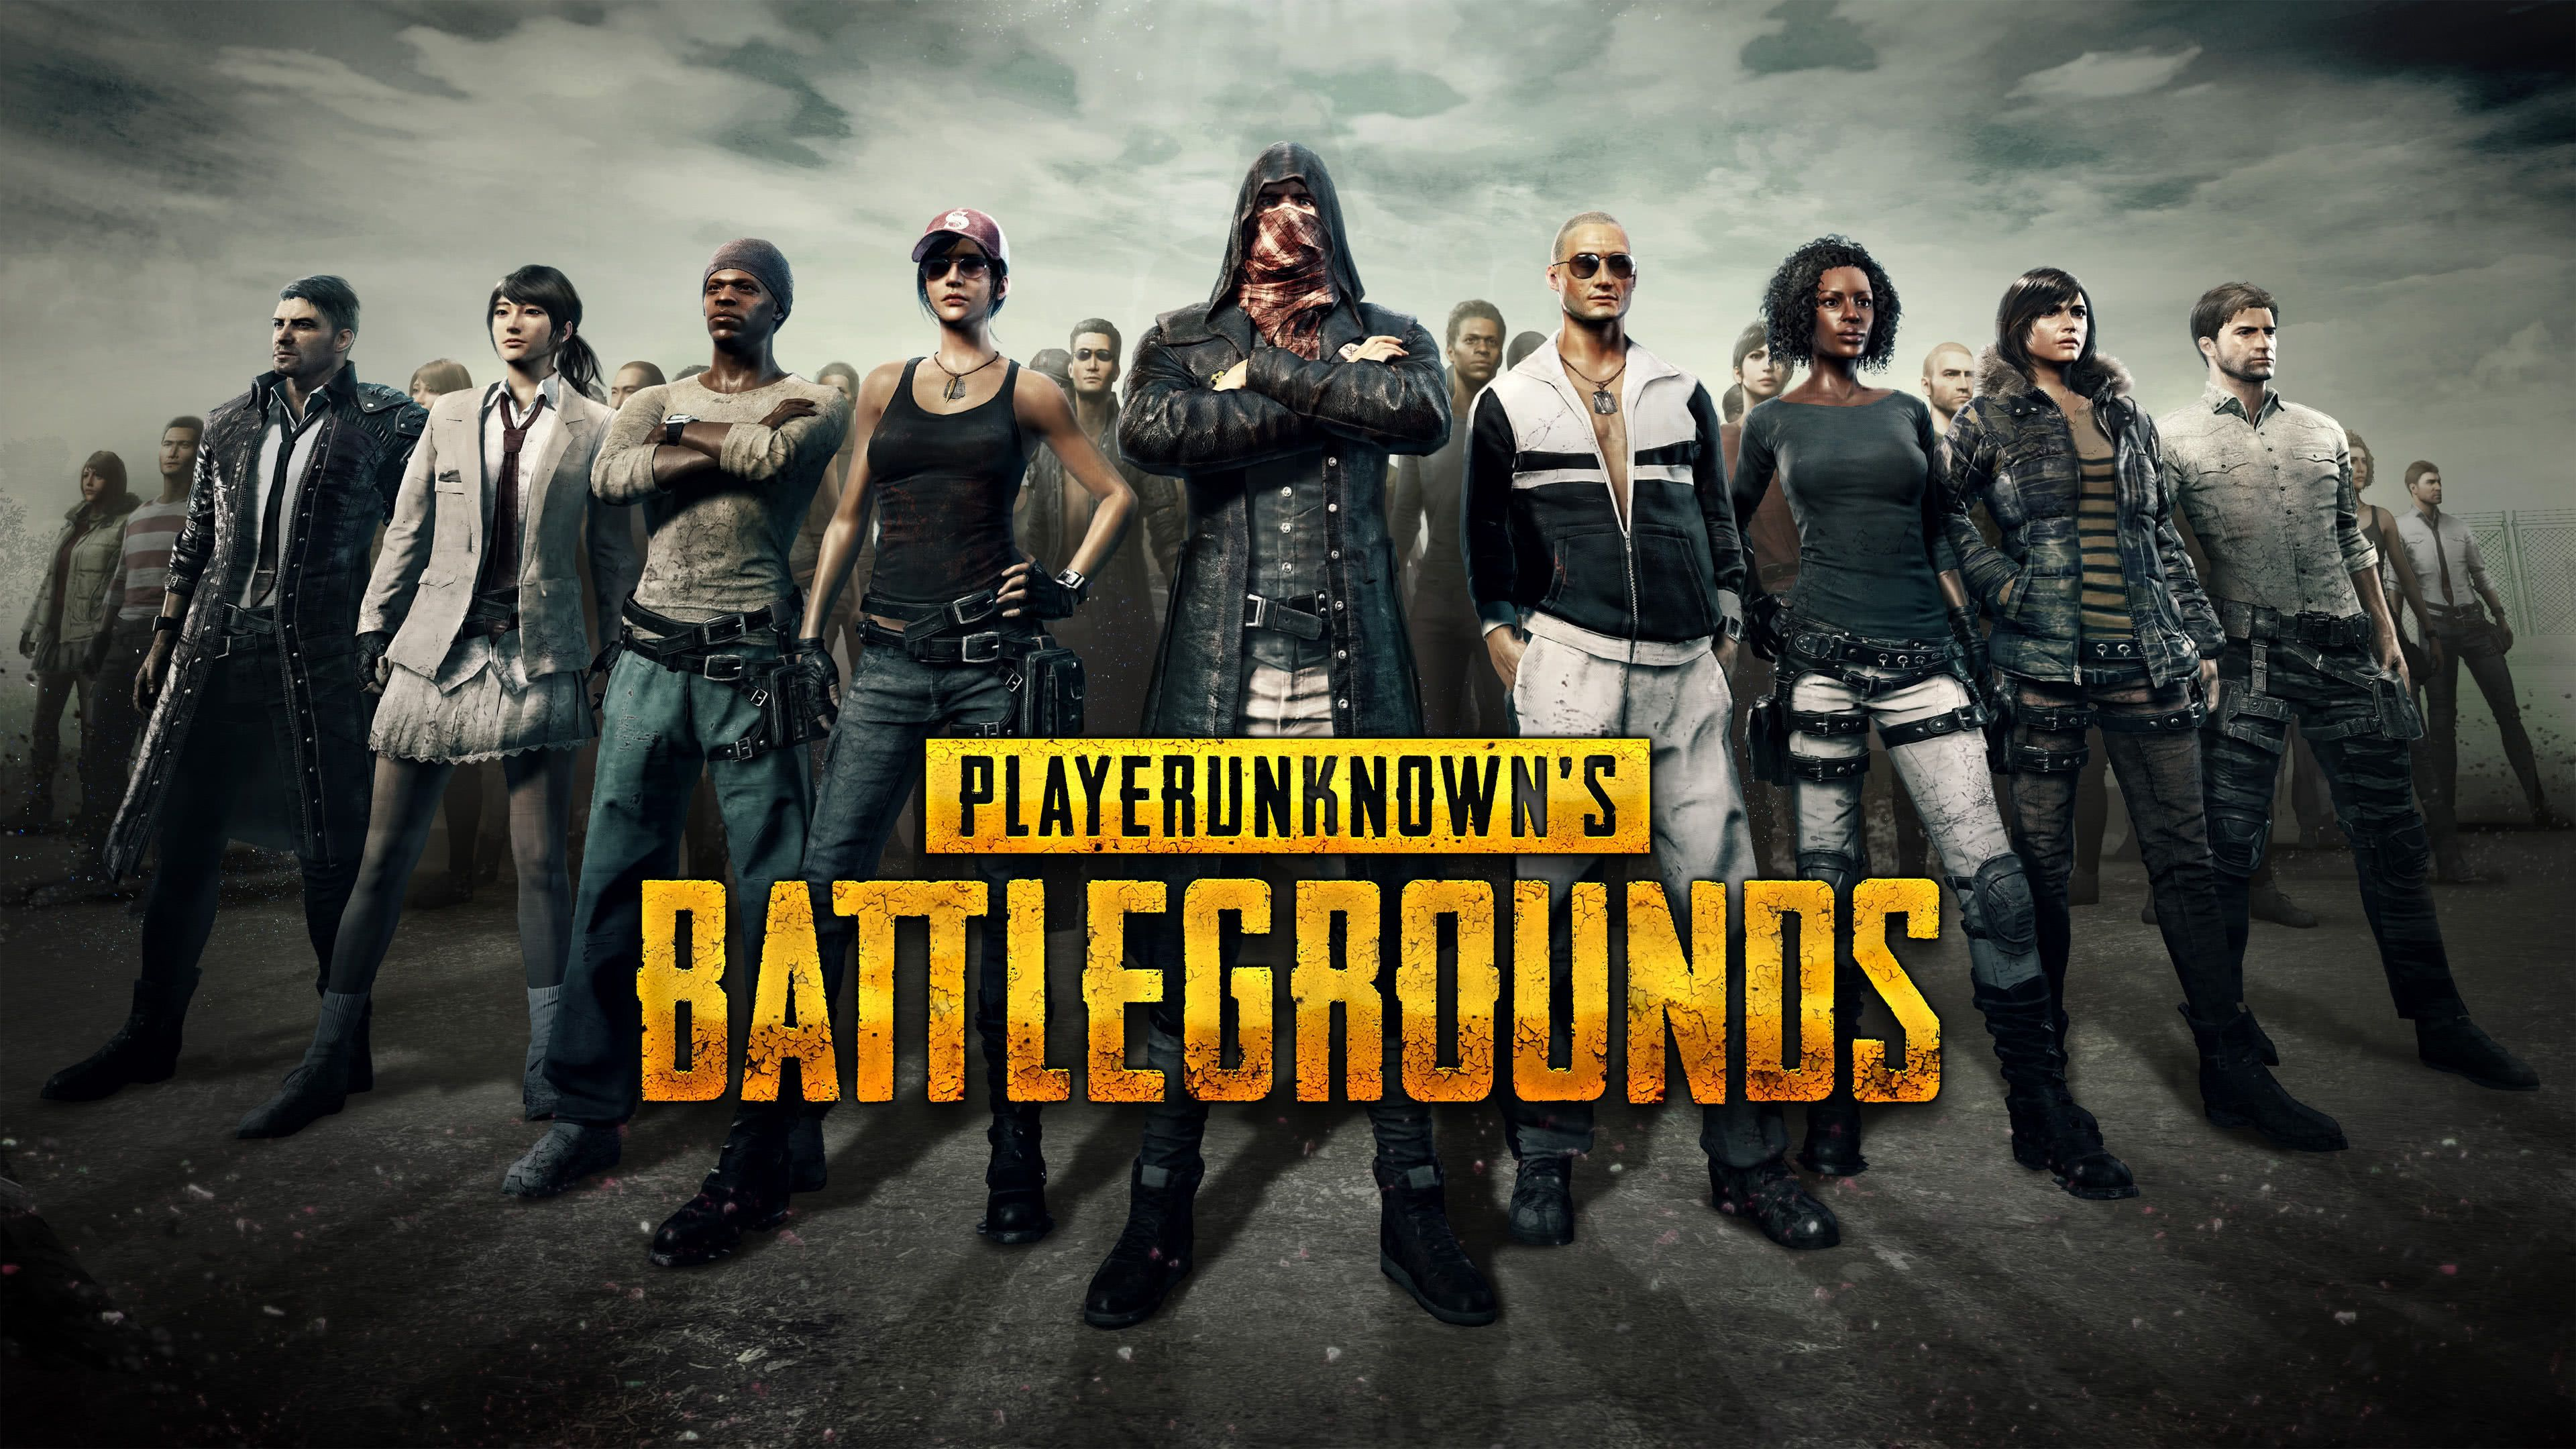 Pubg On Hd 630: PUBG Player Unknown Battlegrounds Characters UHD 4K